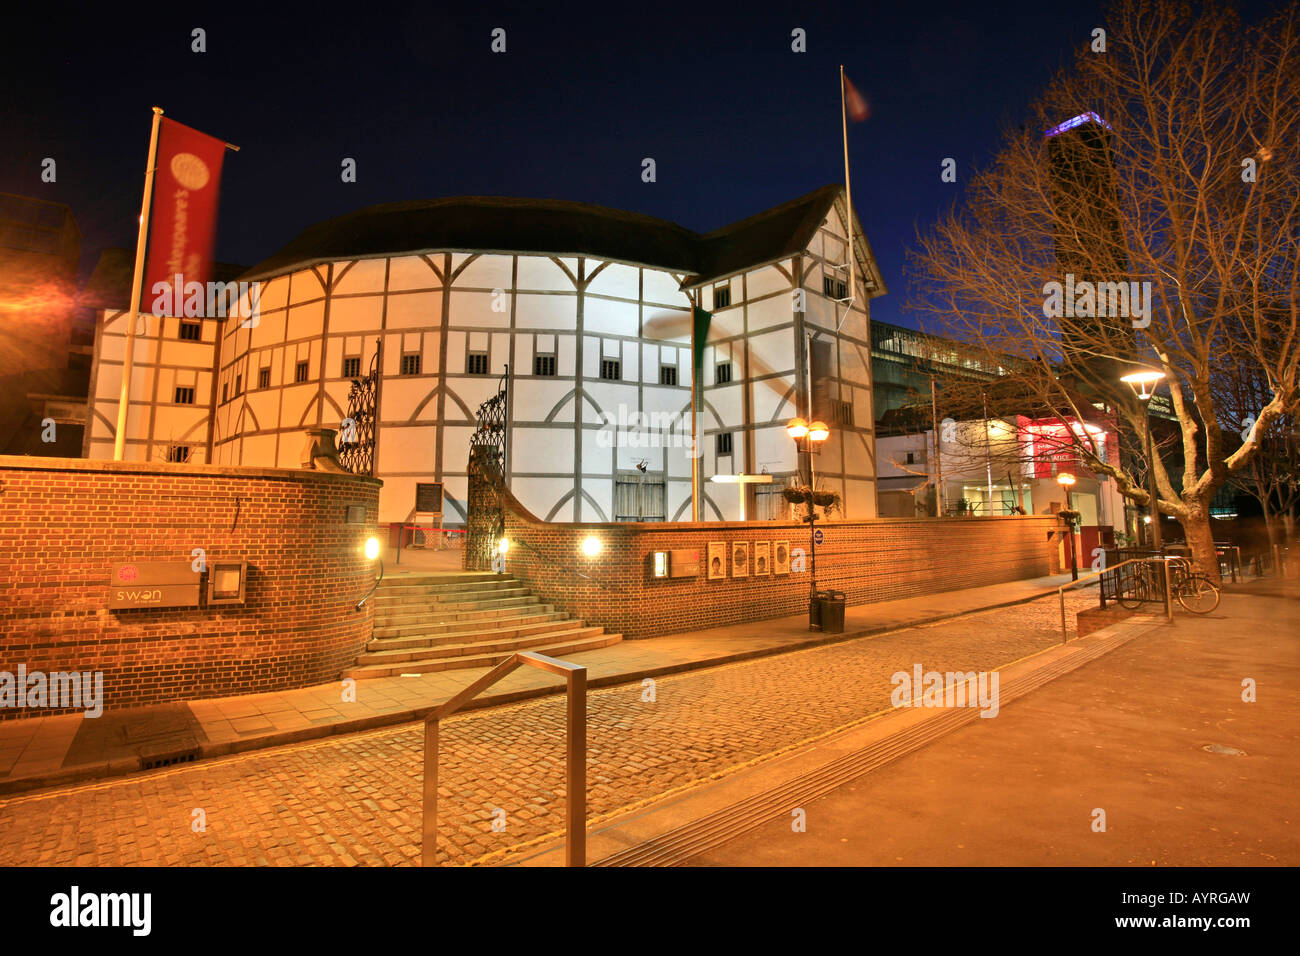 Shakespeare Globe Theatre on the southern bank of the Thames at dusk, London, England, UK - Stock Image